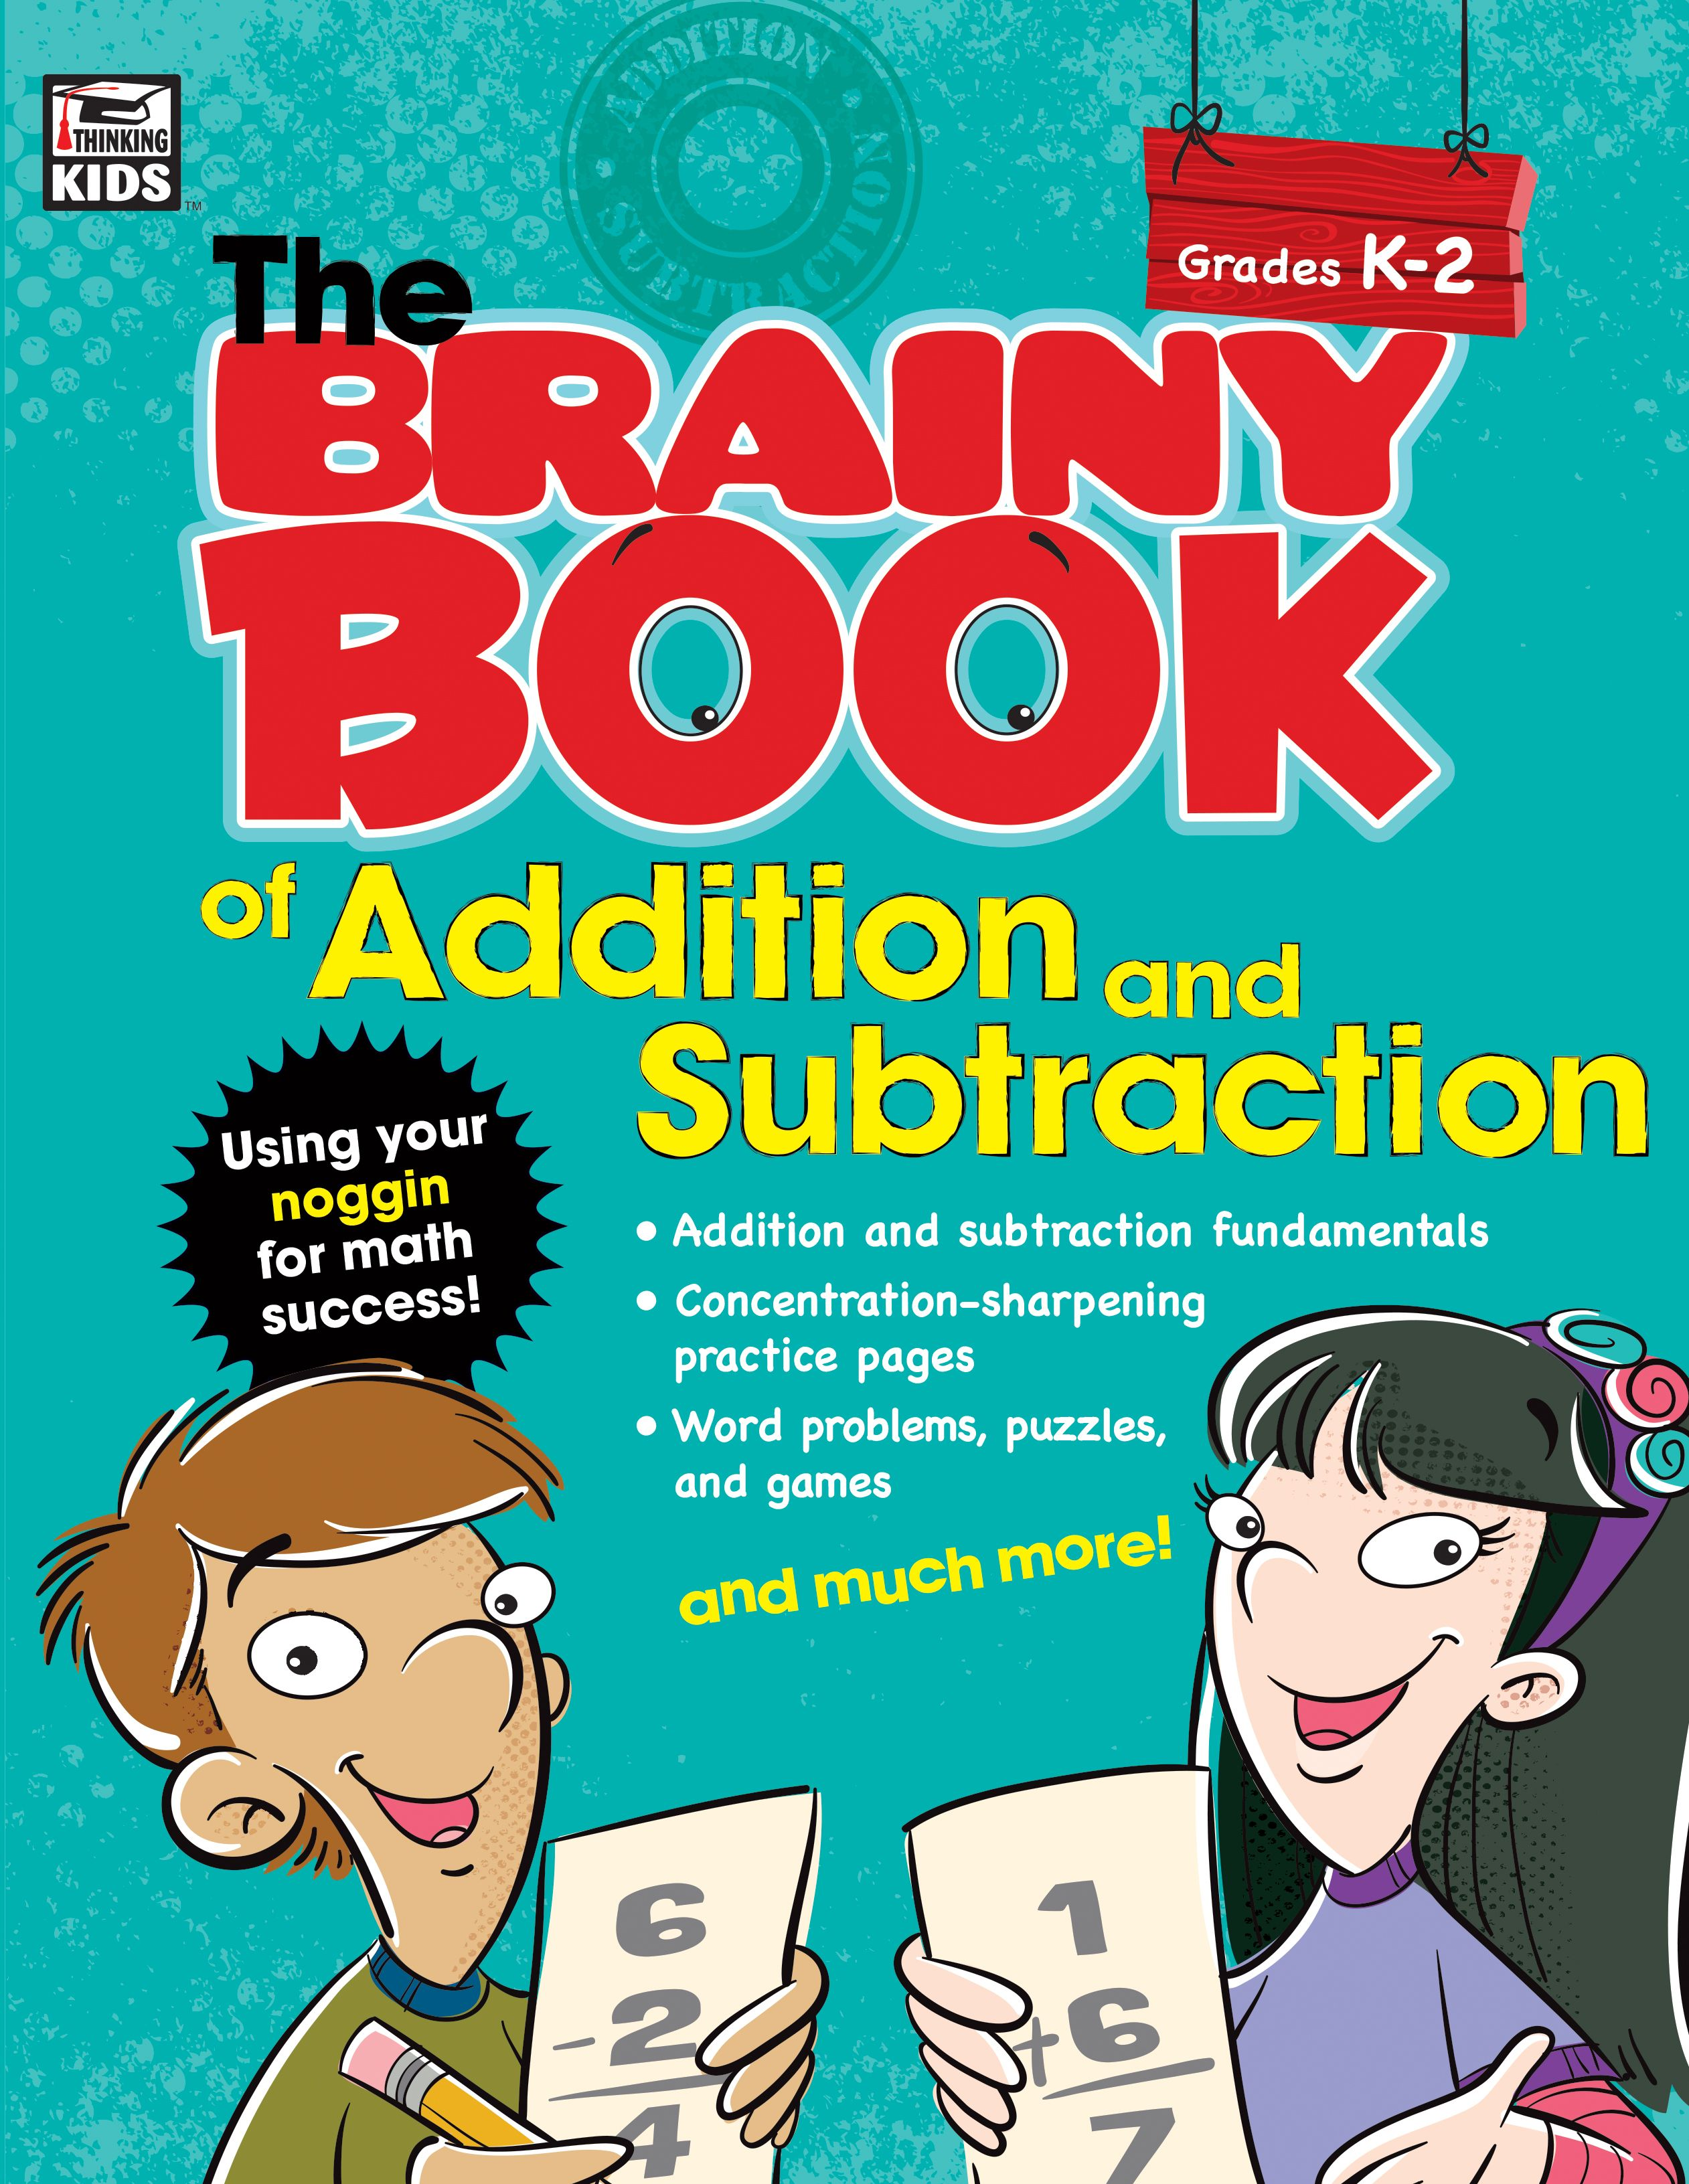 Brainy Book of Addition and Subtraction - Walmart.com